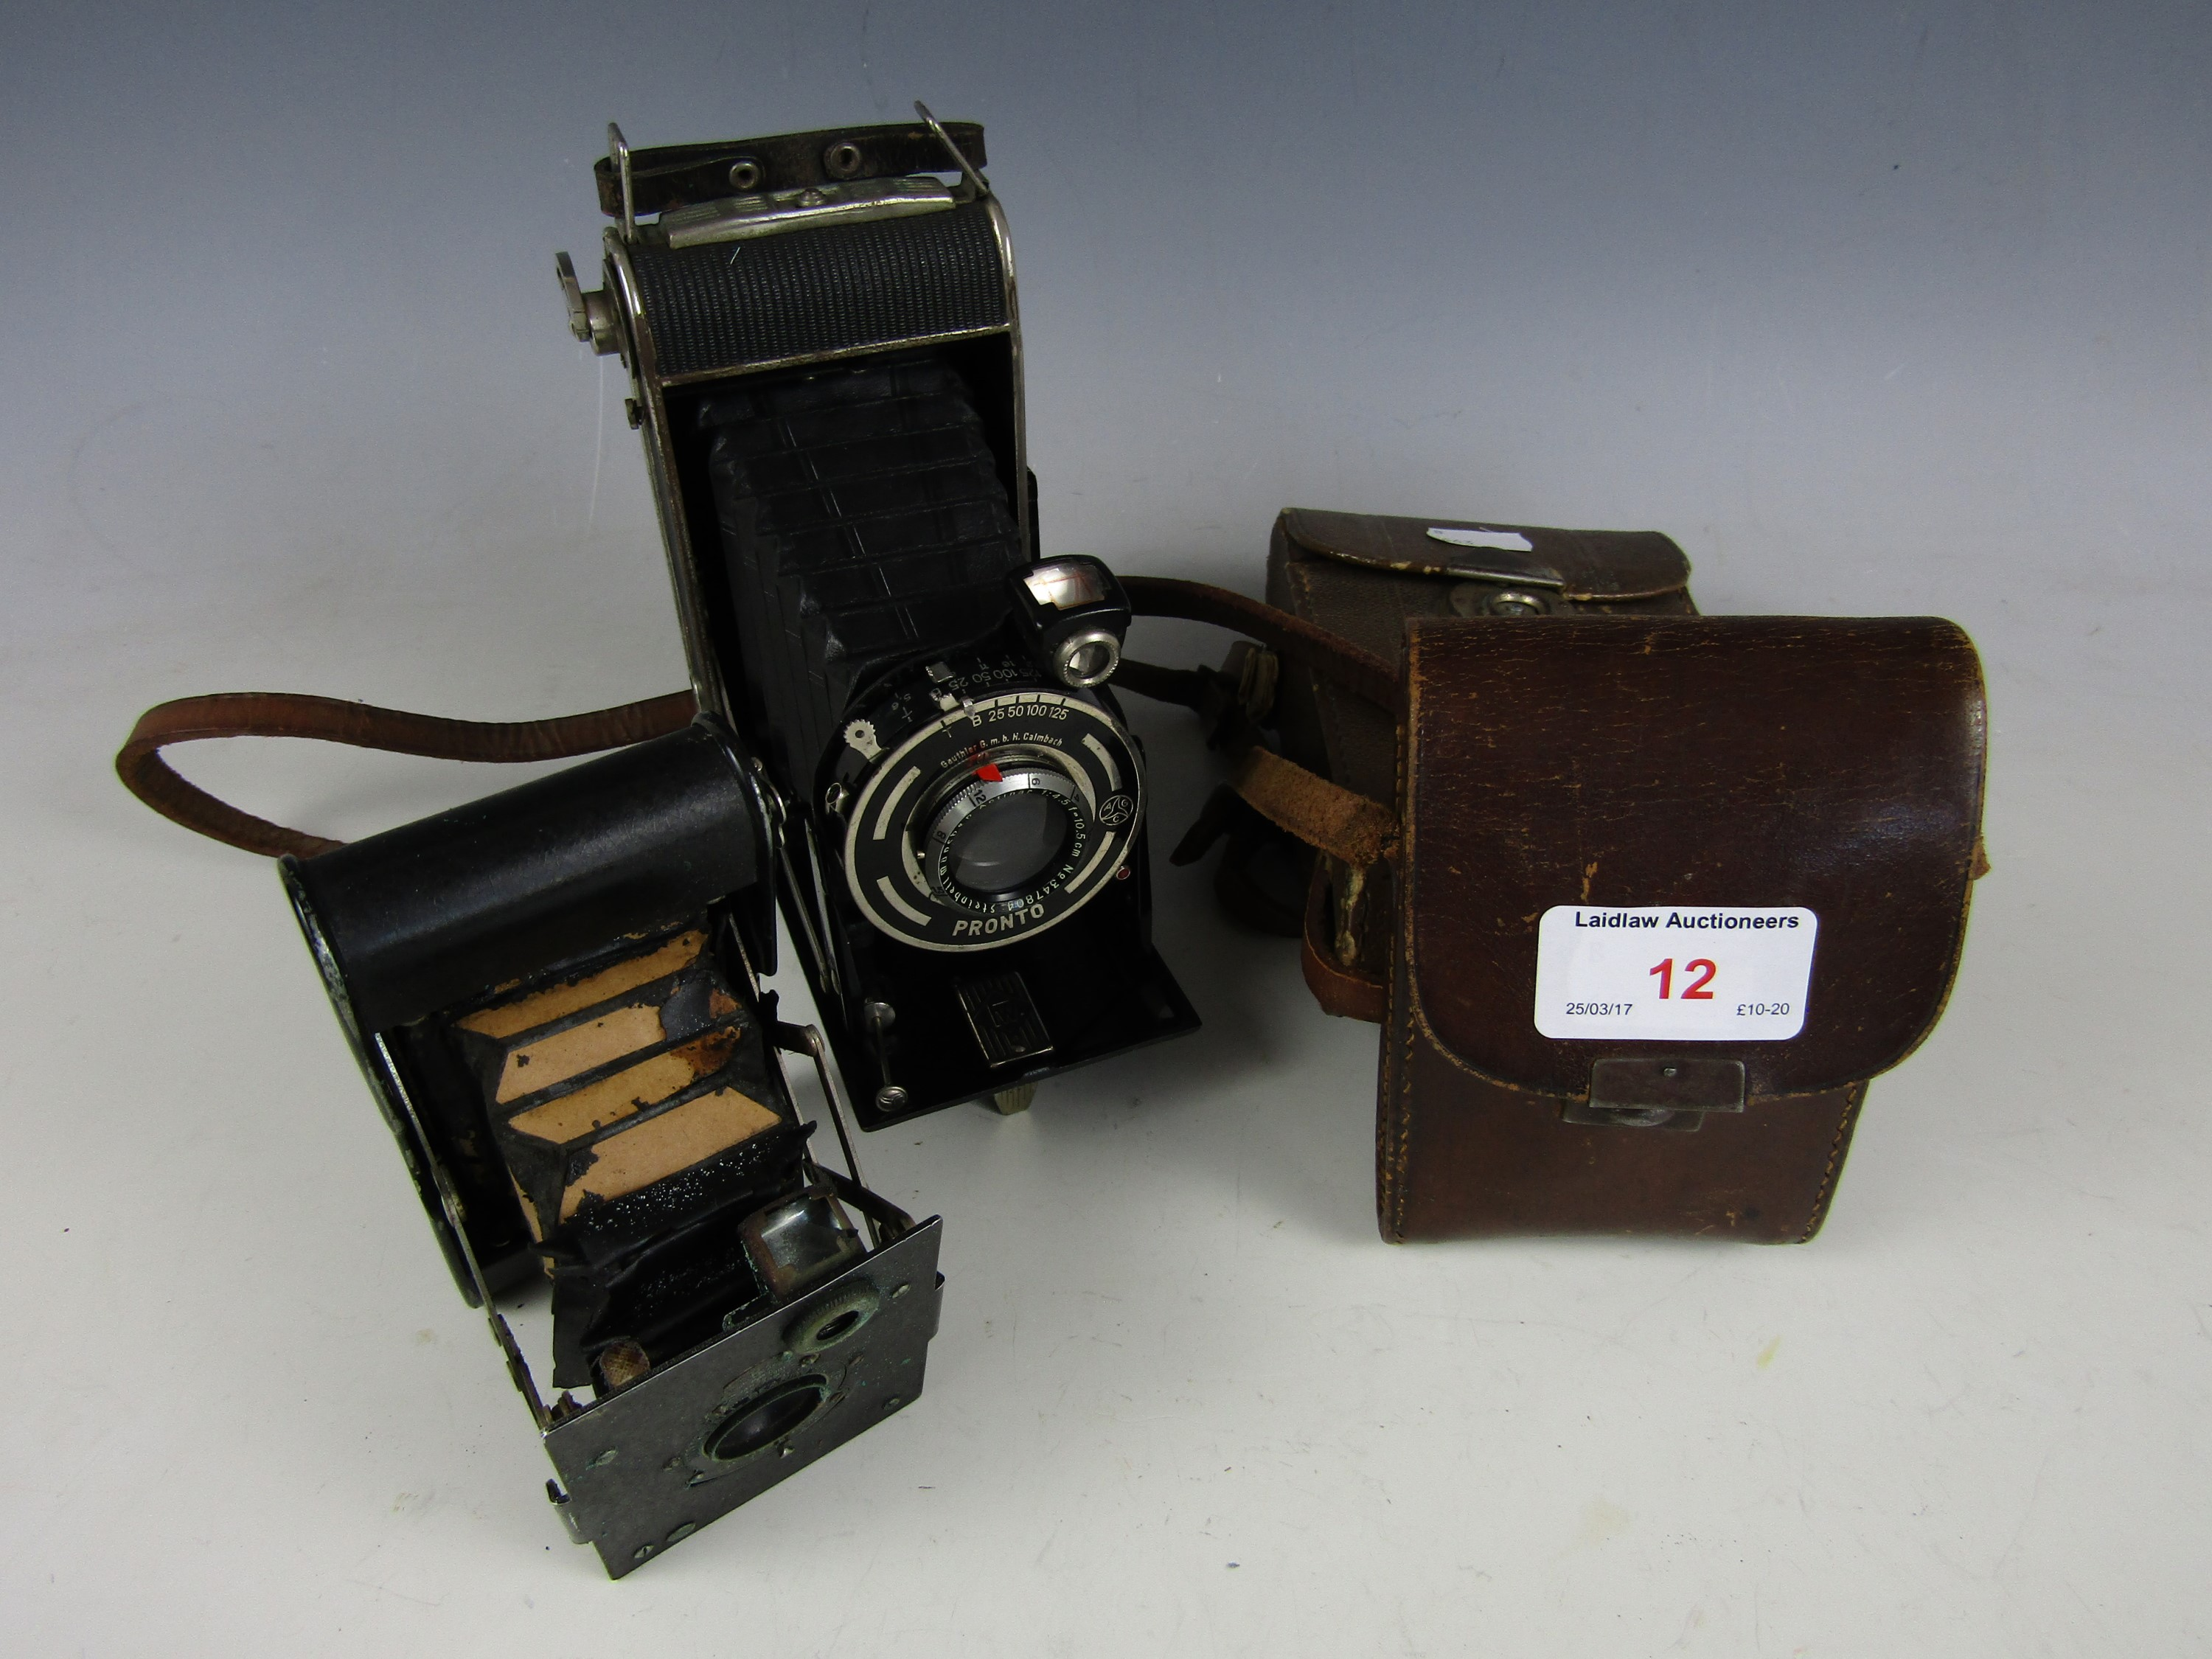 Lot 12 - A vintage Pronto folding camera together with an Eastman Kodak camera